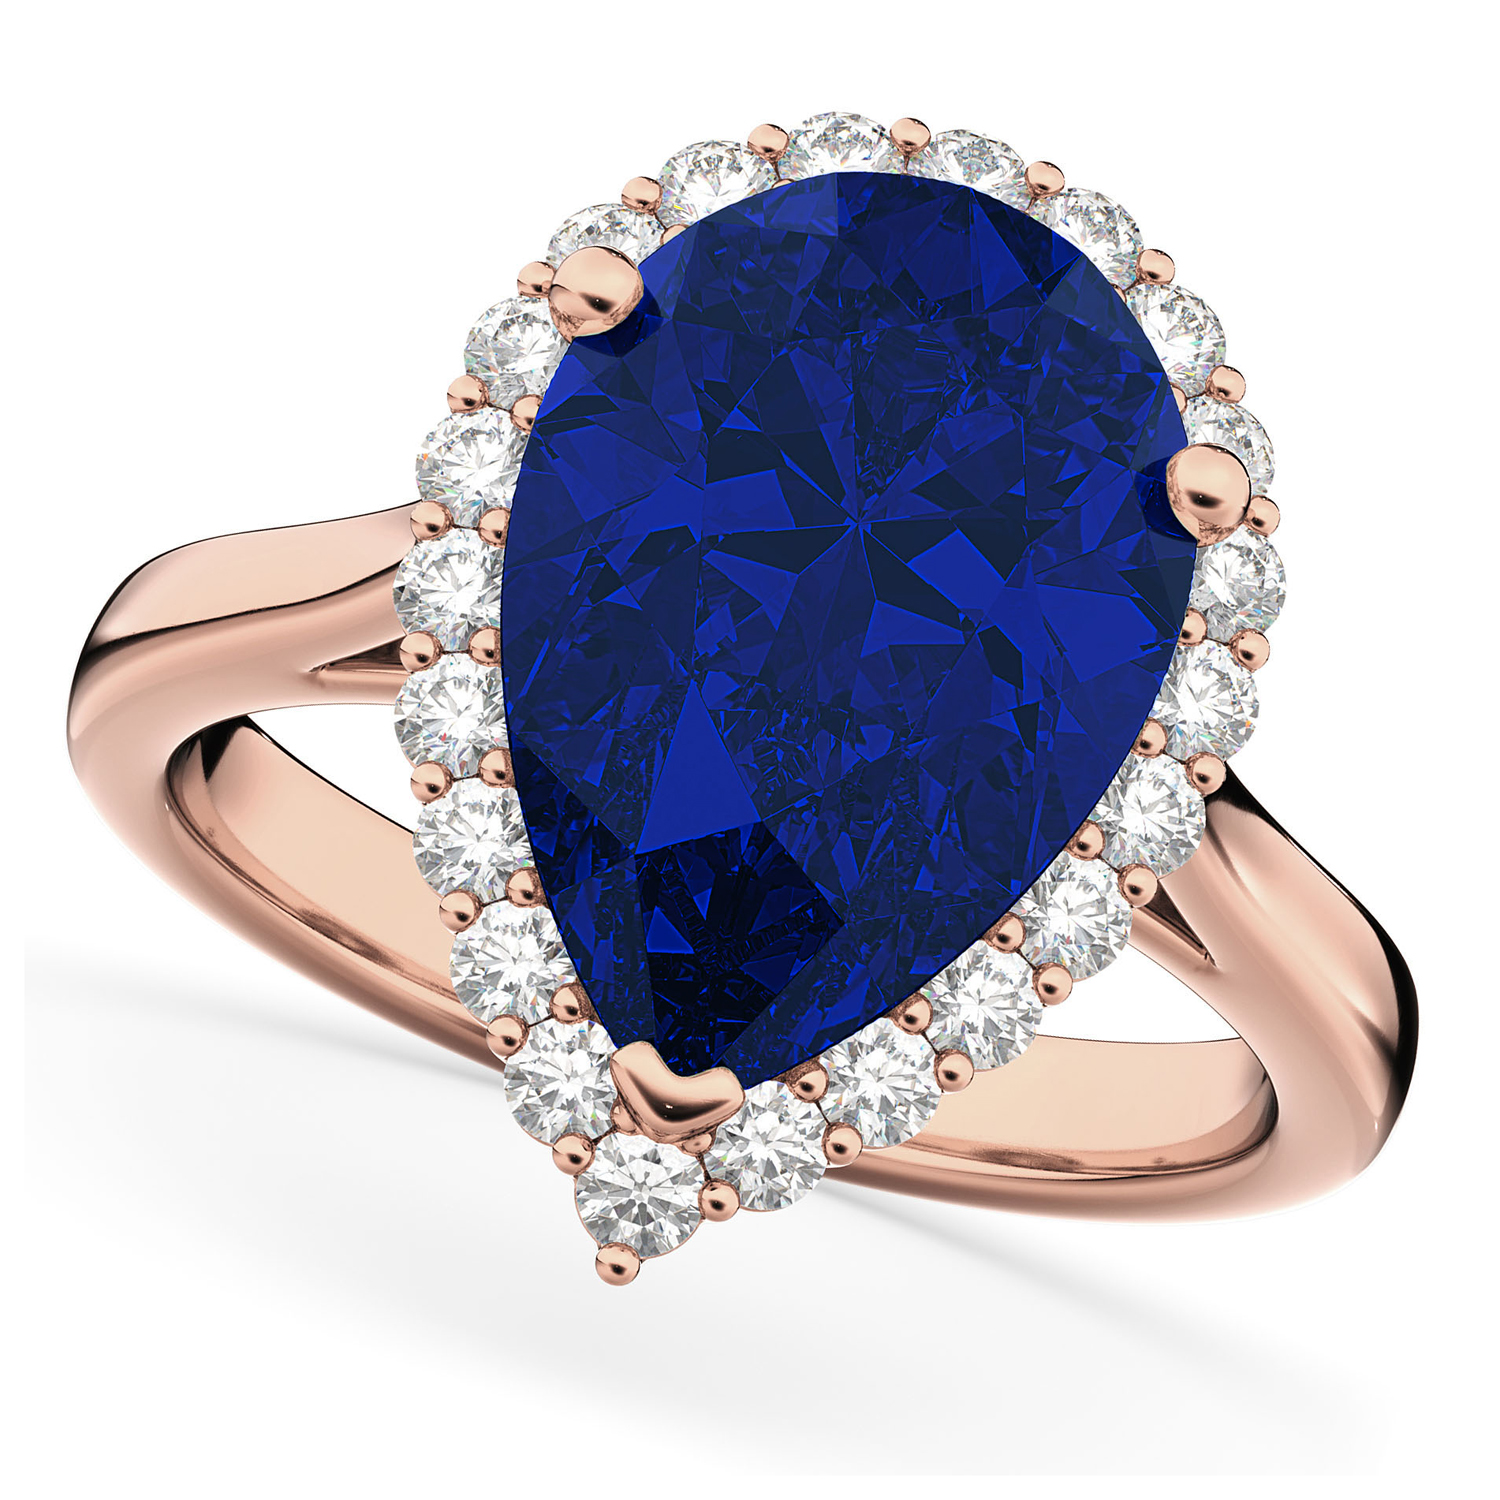 Pear Cut Halo Blue Sapphire & Diamond Engagement Ring 14K Rose Gold 8.34ct